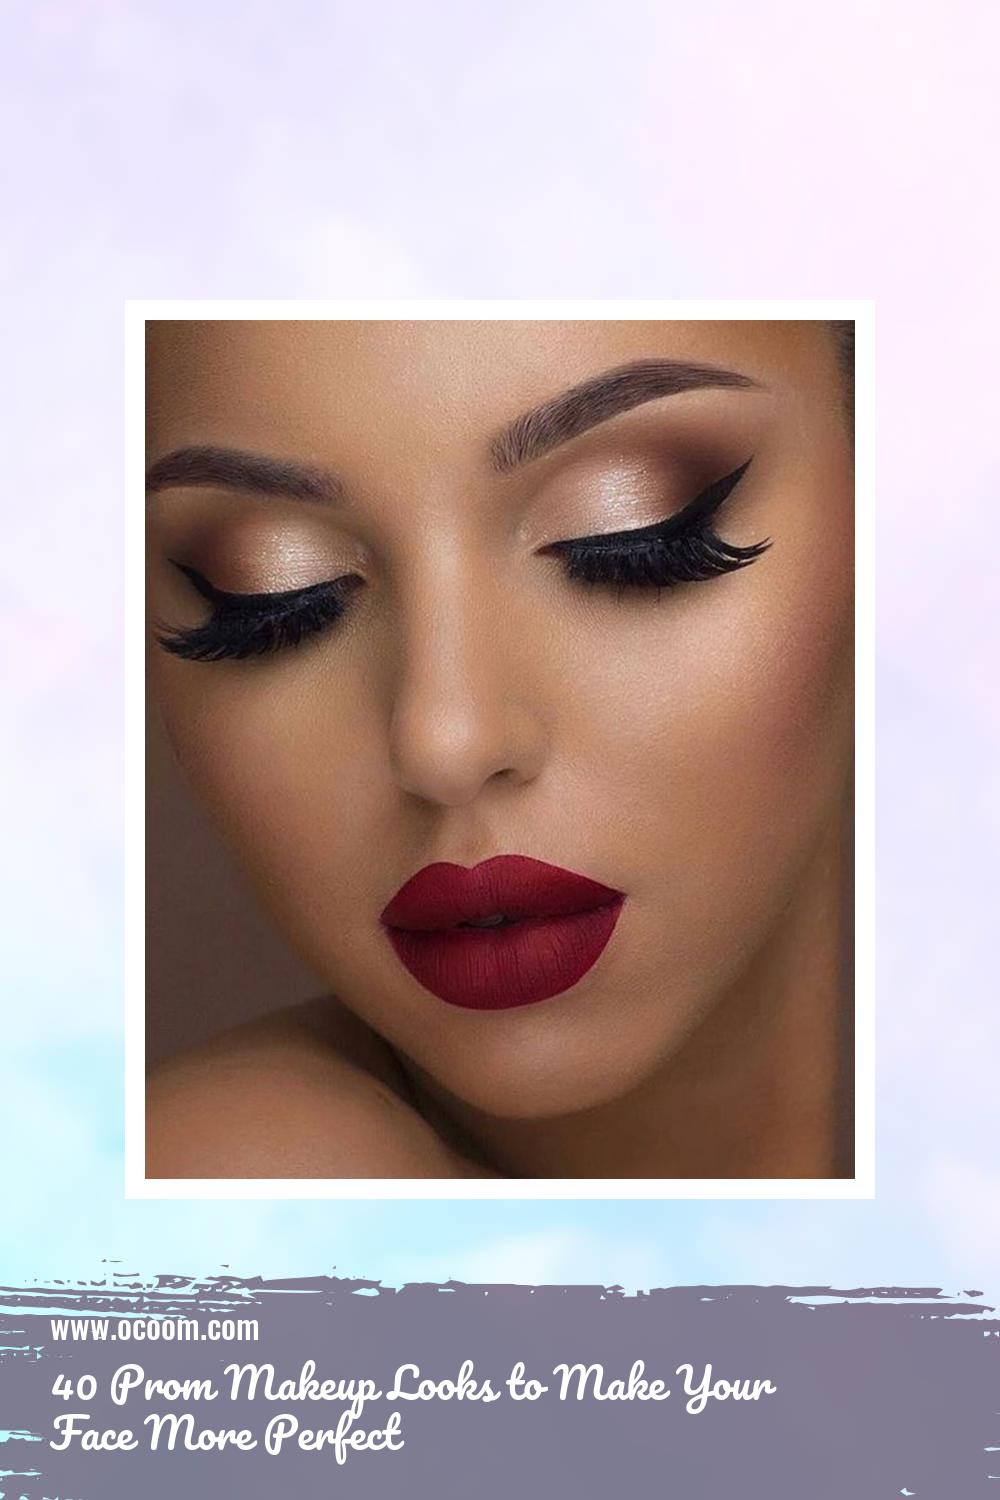 40 Prom Makeup Looks to Make Your Face More Perfect 26